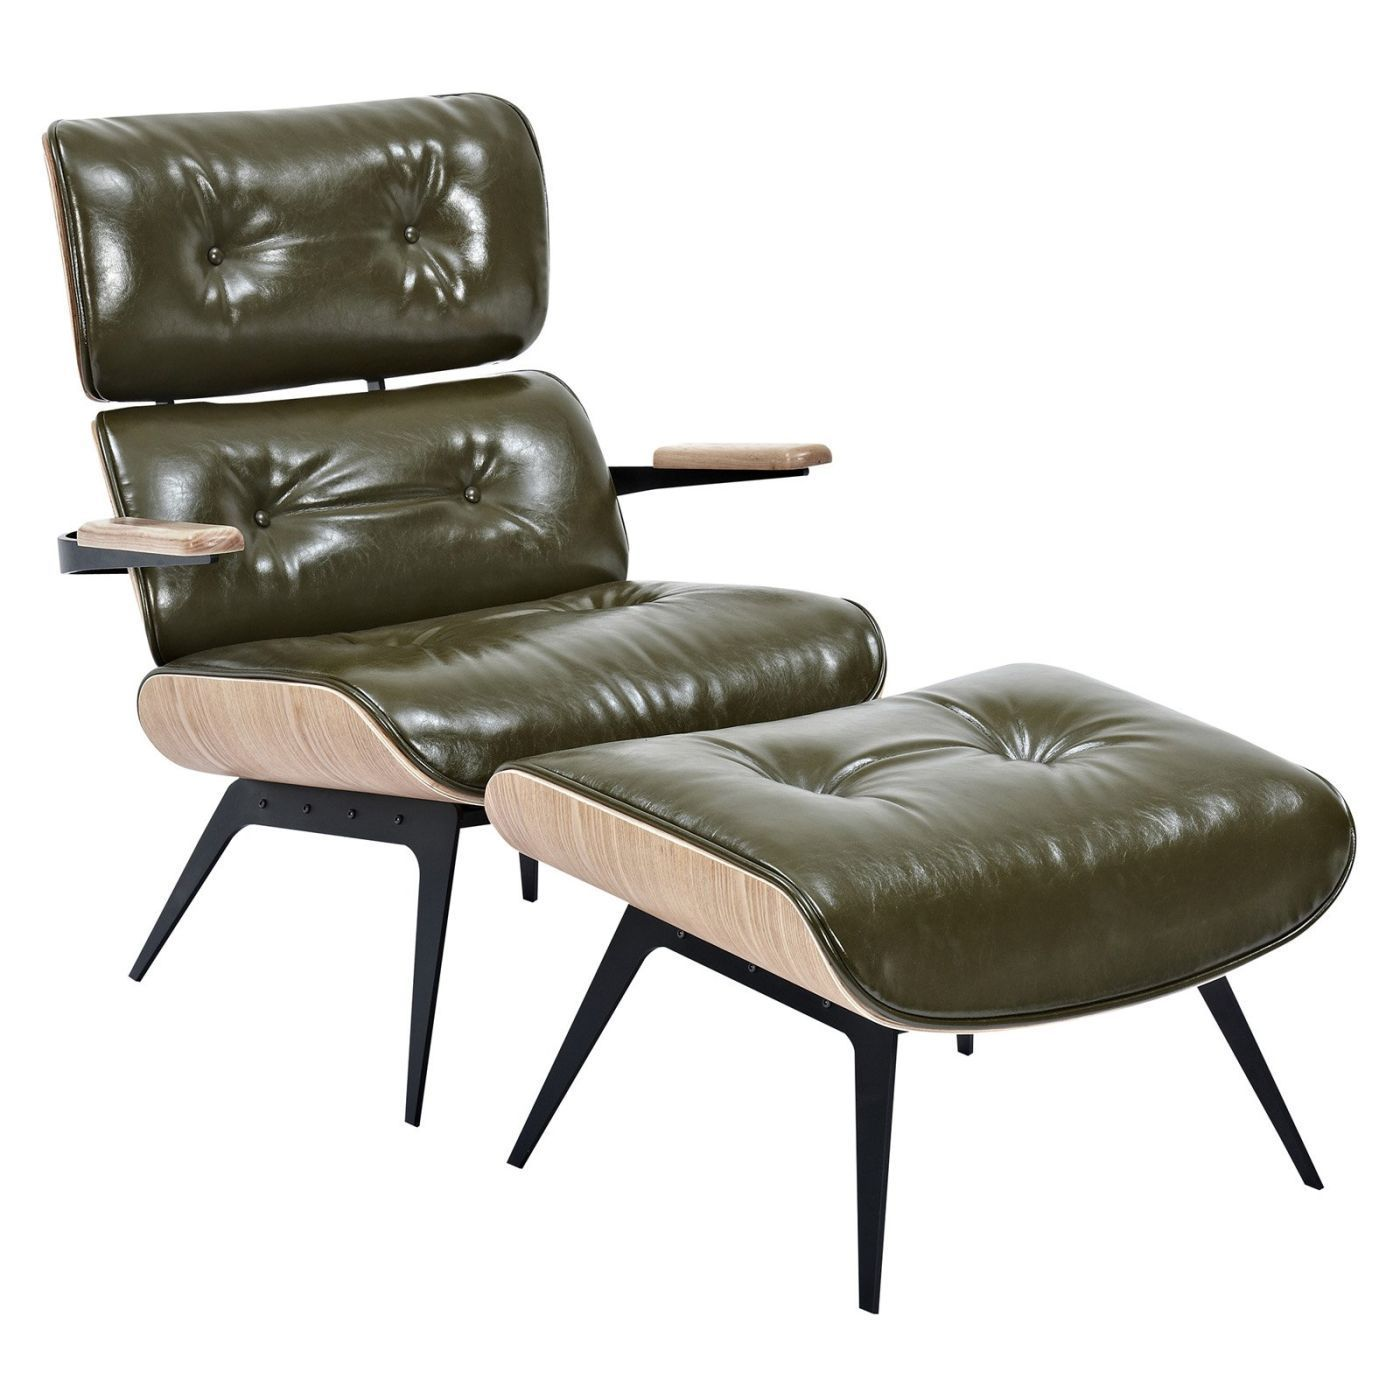 Swell Eames Inspired Lounge Chair And Ottoman Olive Green Gmtry Best Dining Table And Chair Ideas Images Gmtryco